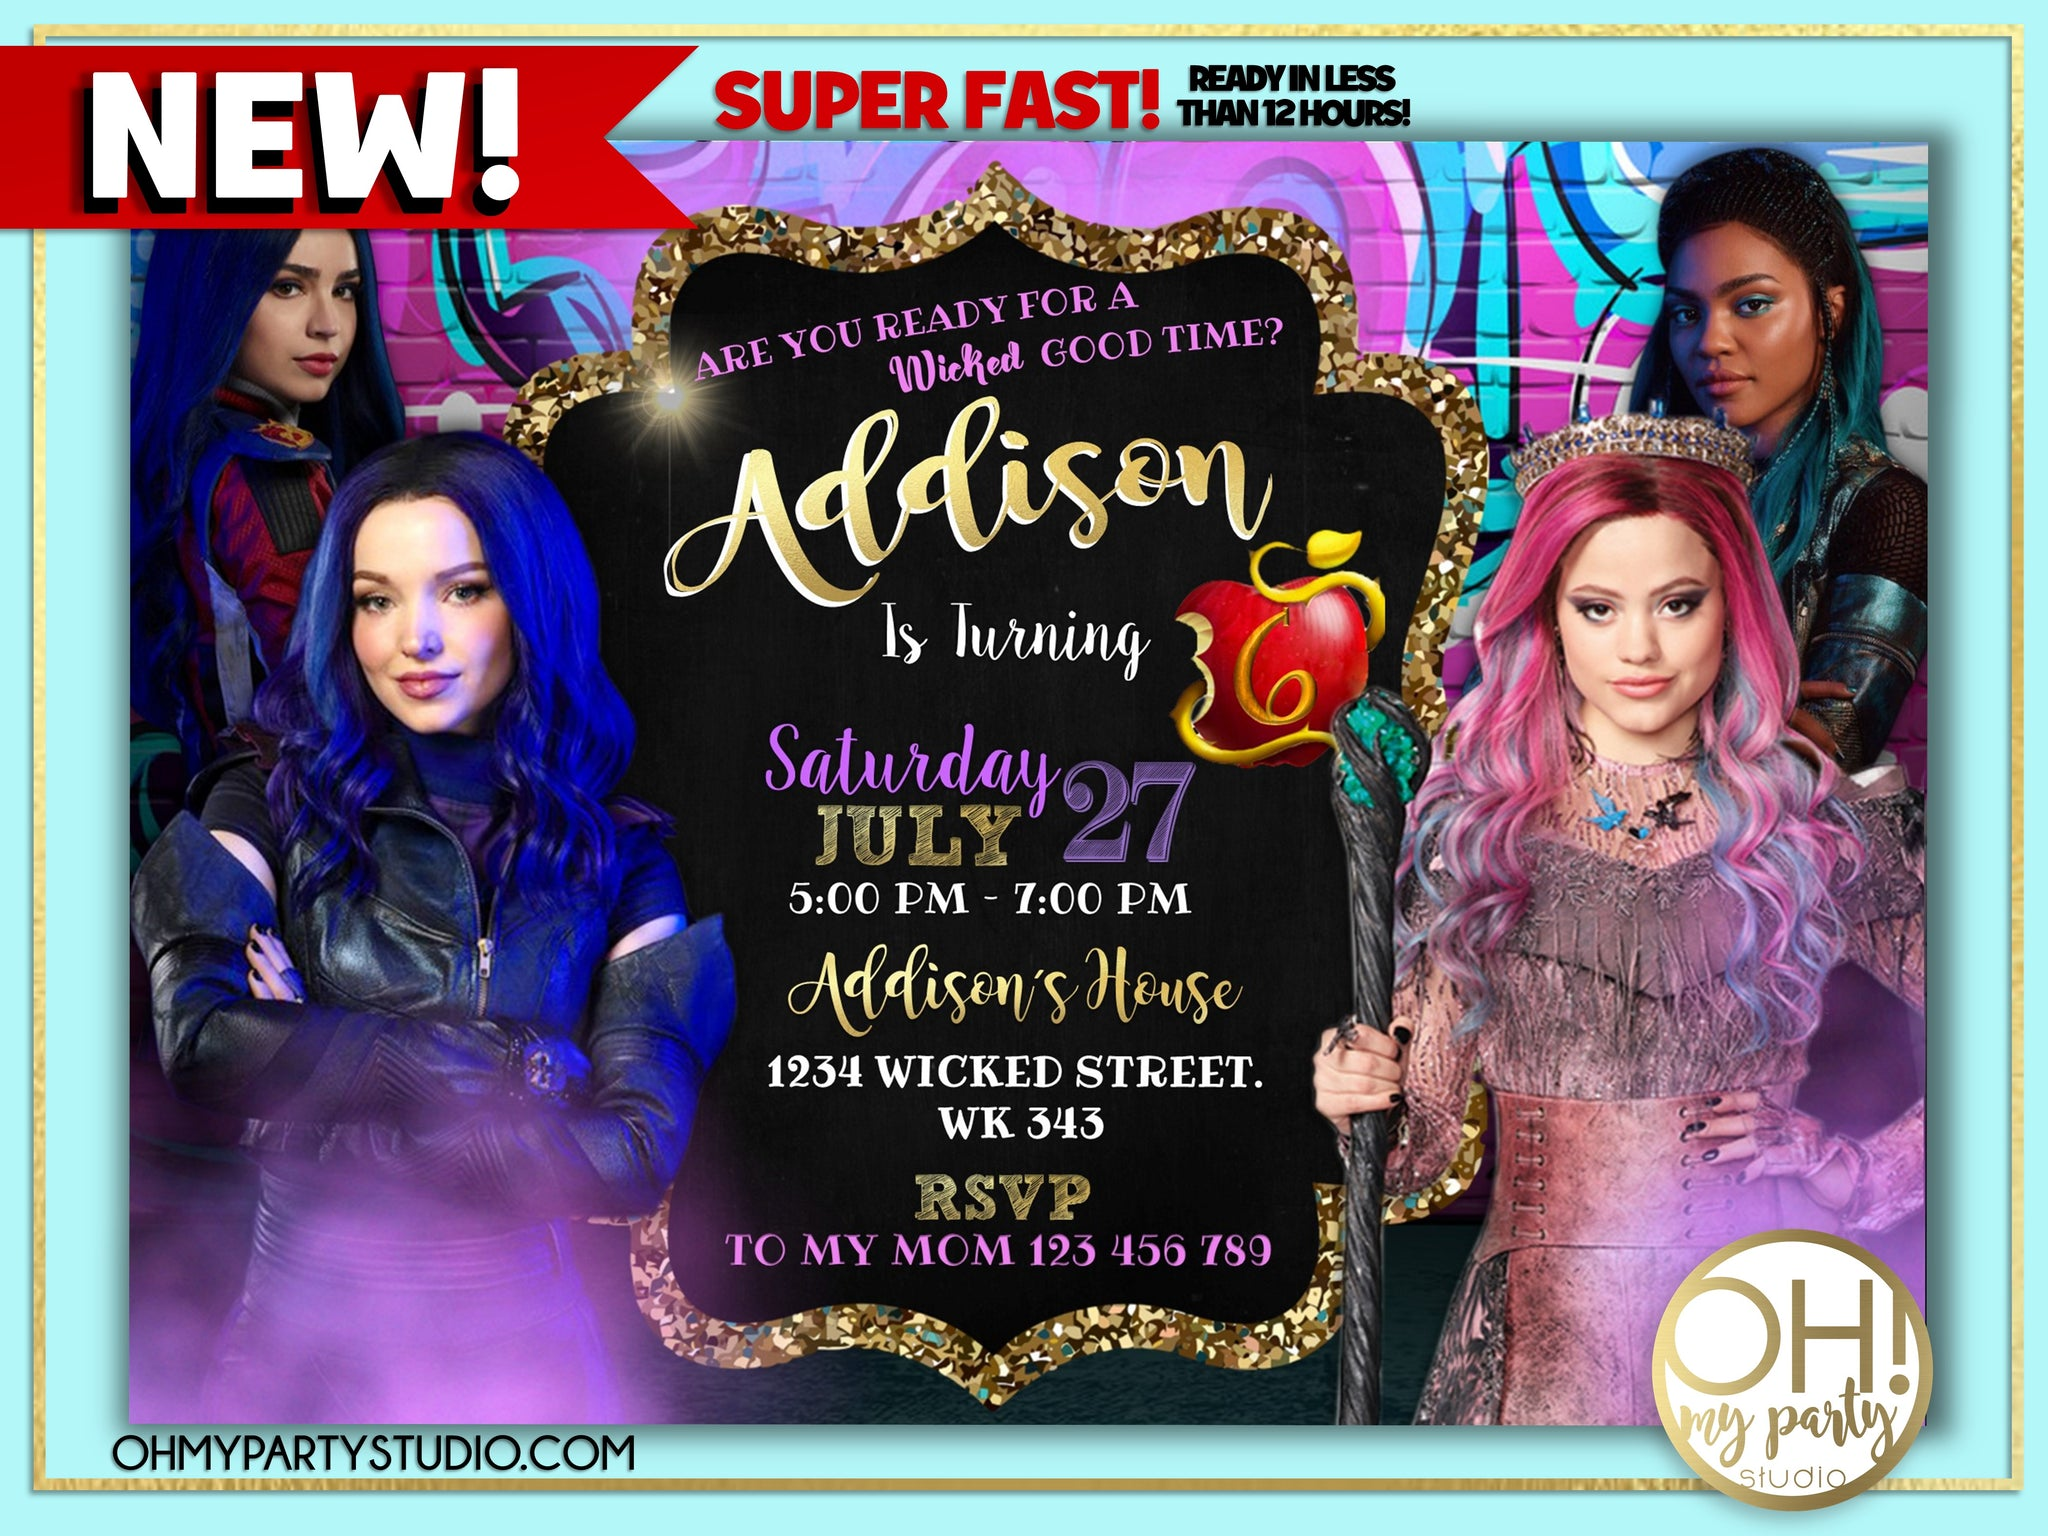 DESCENDANTS 3 BIRTHDAY PARTY INVITATION, DESCENDANTS 3 PARTY, DESCENDANTS 3 INVITATION, DESCENDANTS 3 INVITATIONS, DESCENDANTS 3 PARTY IDEAS, DESCENDANTS 3 BIRTHDAY, DESCENDANTS 3 INVITE, DESCENDANTS 3 CARD, DESCENDANTS 3 PARTY PRINTABLES, DESCENDANTS 3 BIRTHDAY PARTY